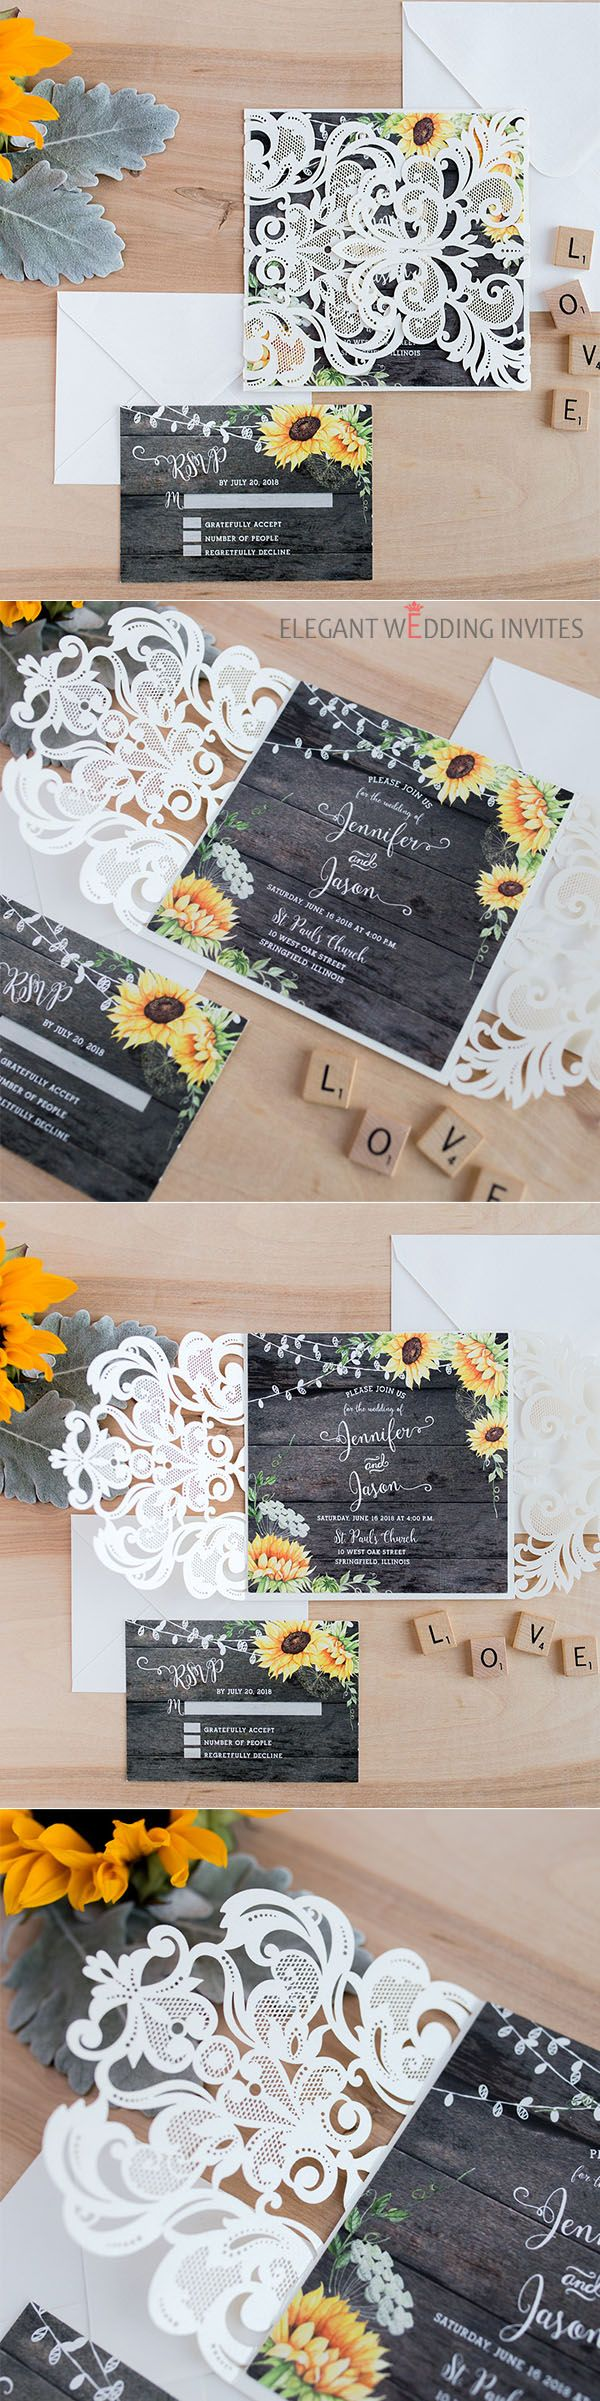 Rustic watercolor yellow sunflower barn wood wedding invitation ...